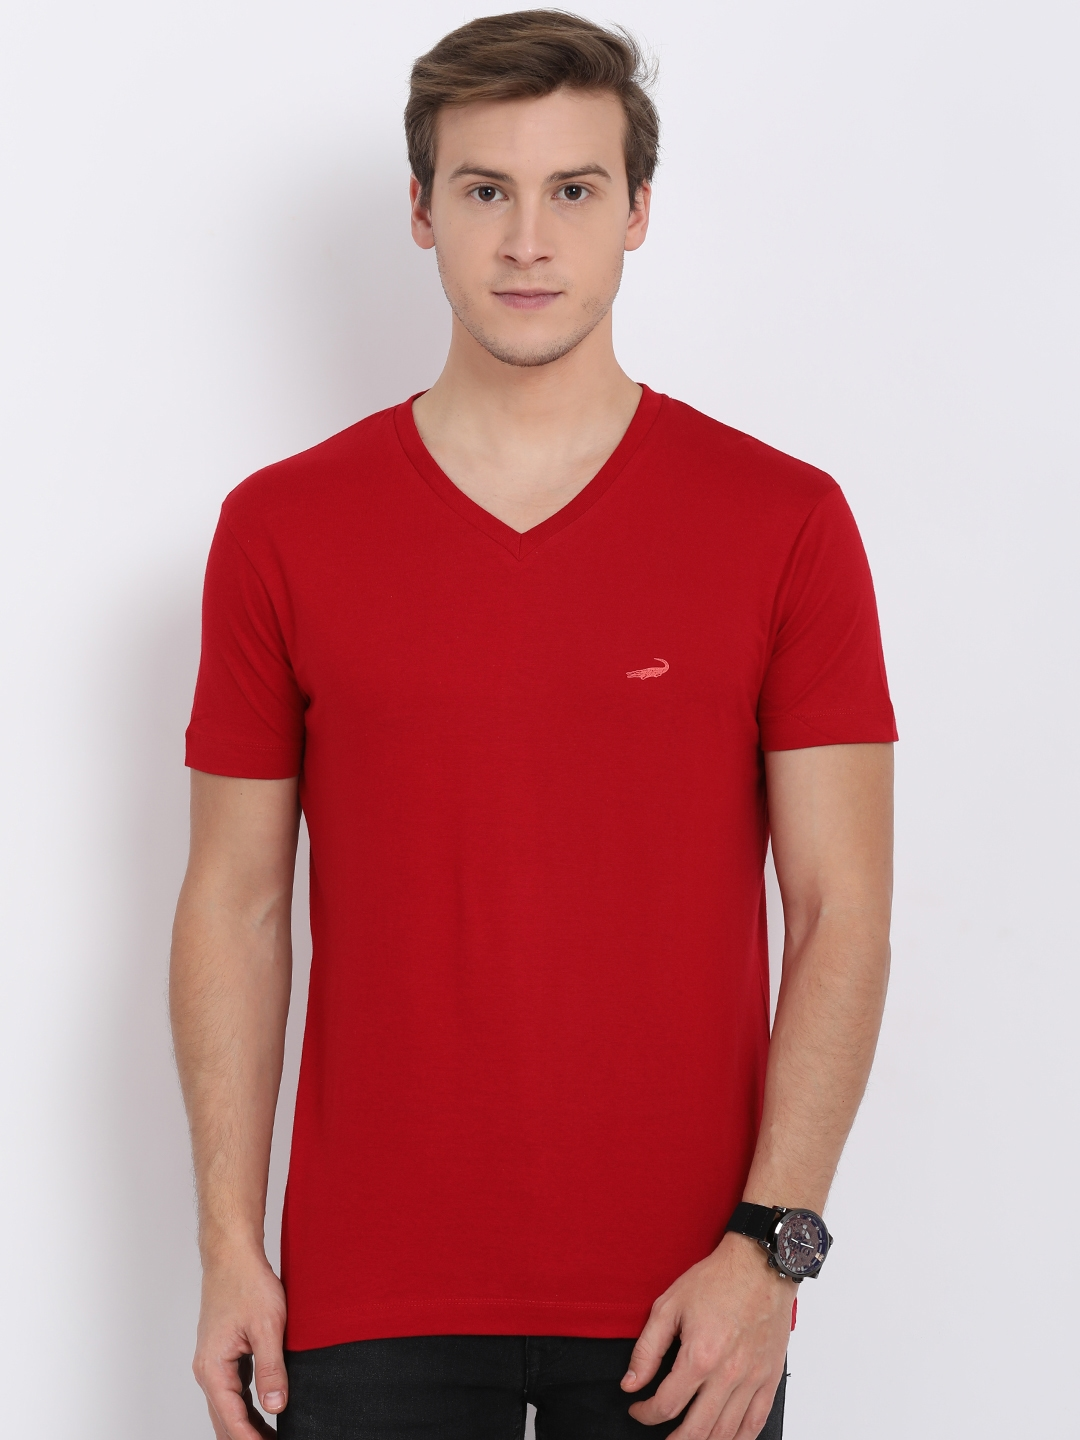 fbe98eed3d2a Buy Crocodile Men Red Solid V Neck T Shirt - Tshirts for Men 8629943 ...